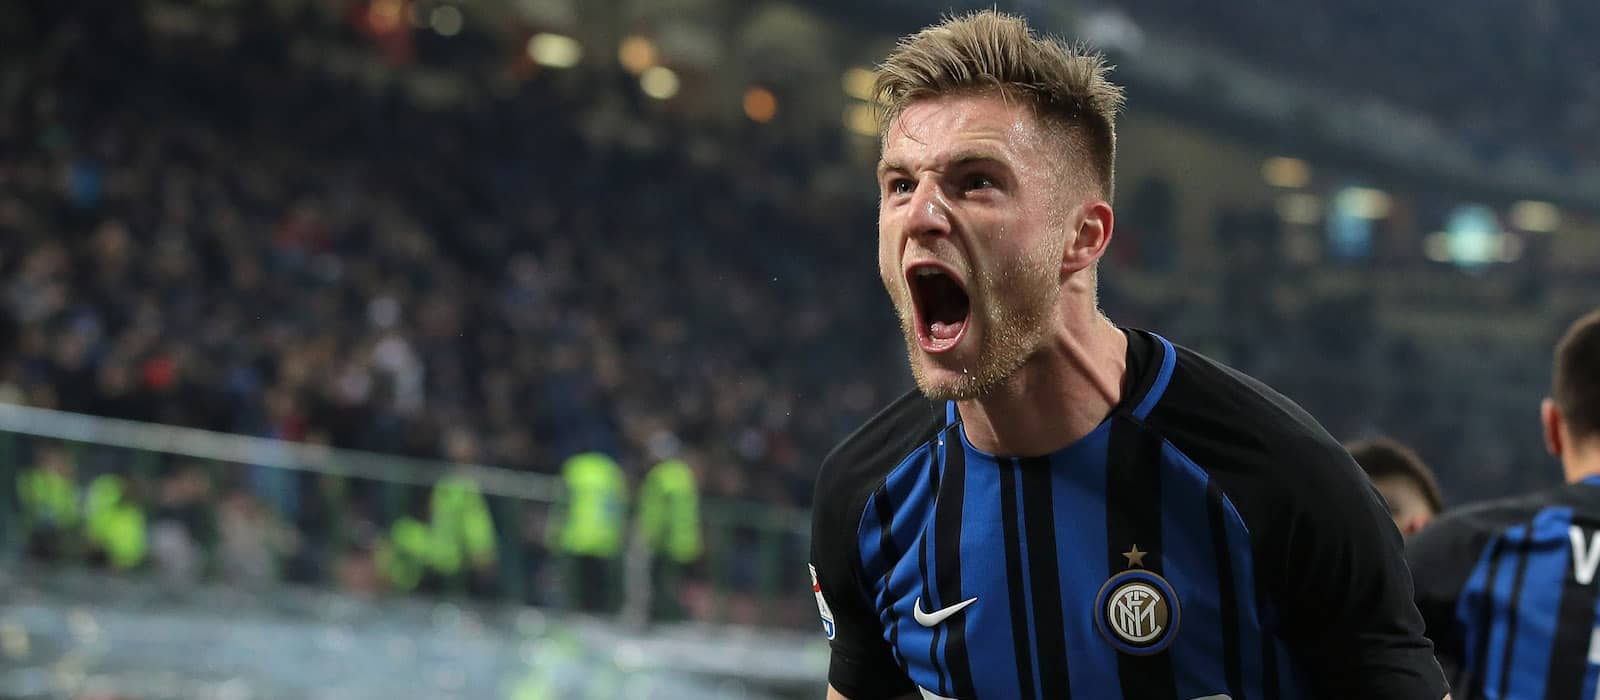 Milan Skriniar delaying contract talks at Inter with interest from Mourinho and Man United – report